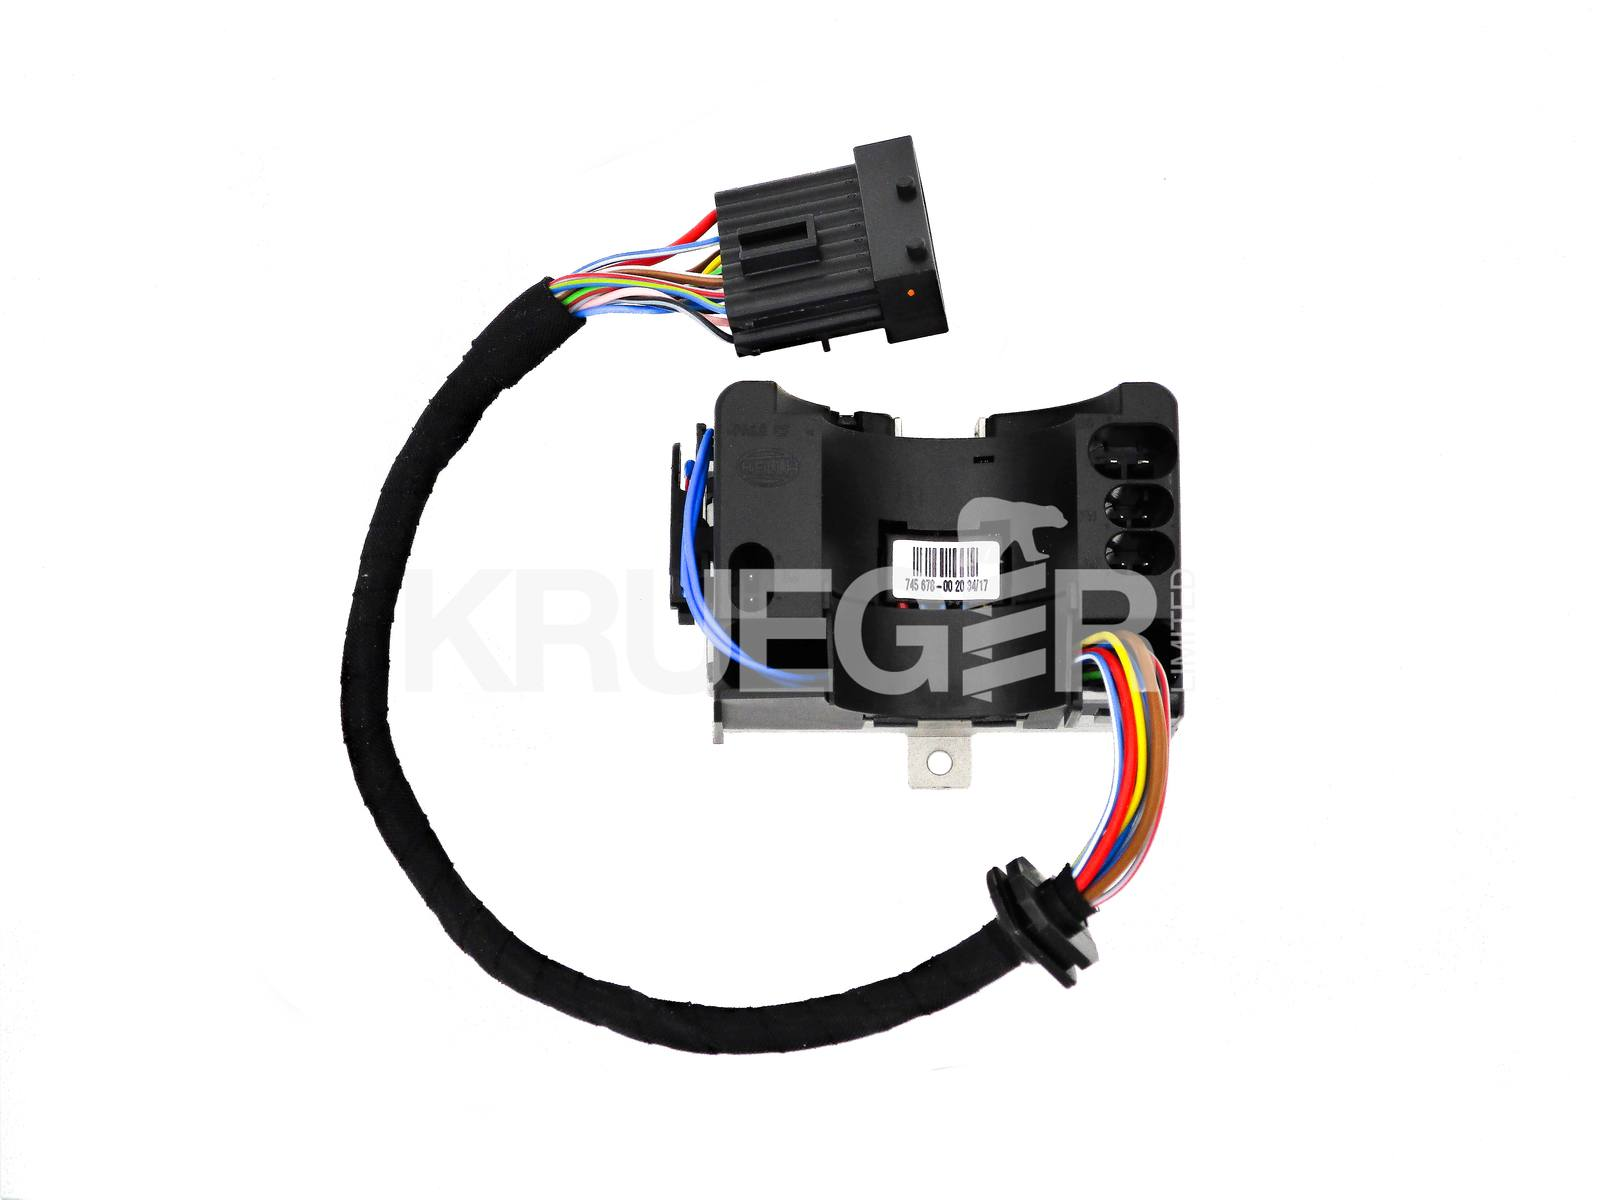 heating spares adapter